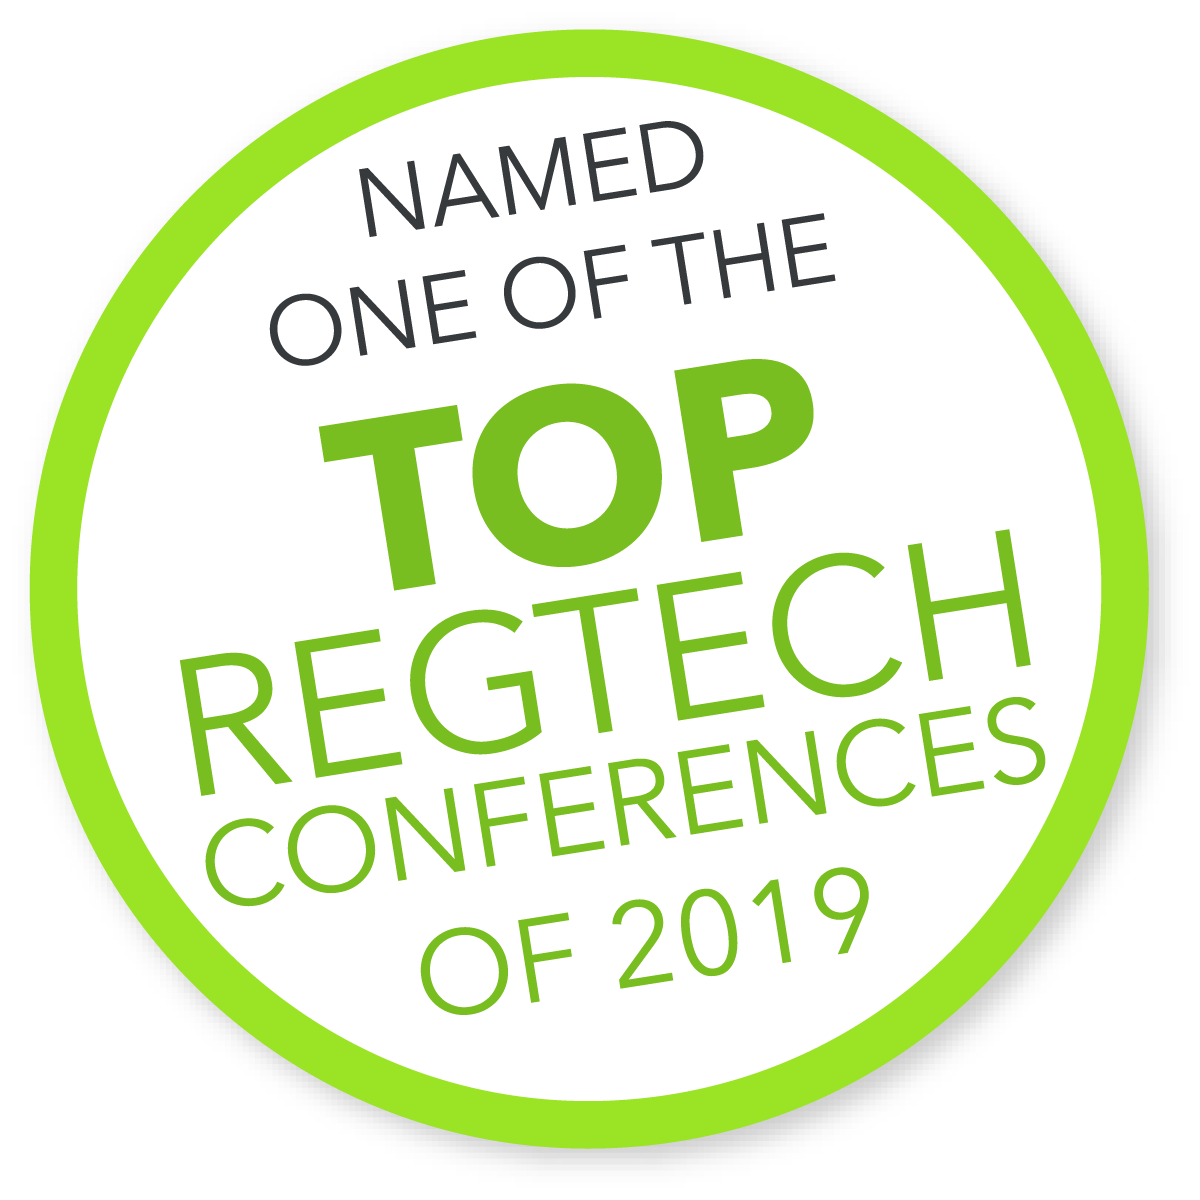 COMPLY2019 named top regtech conference 2019